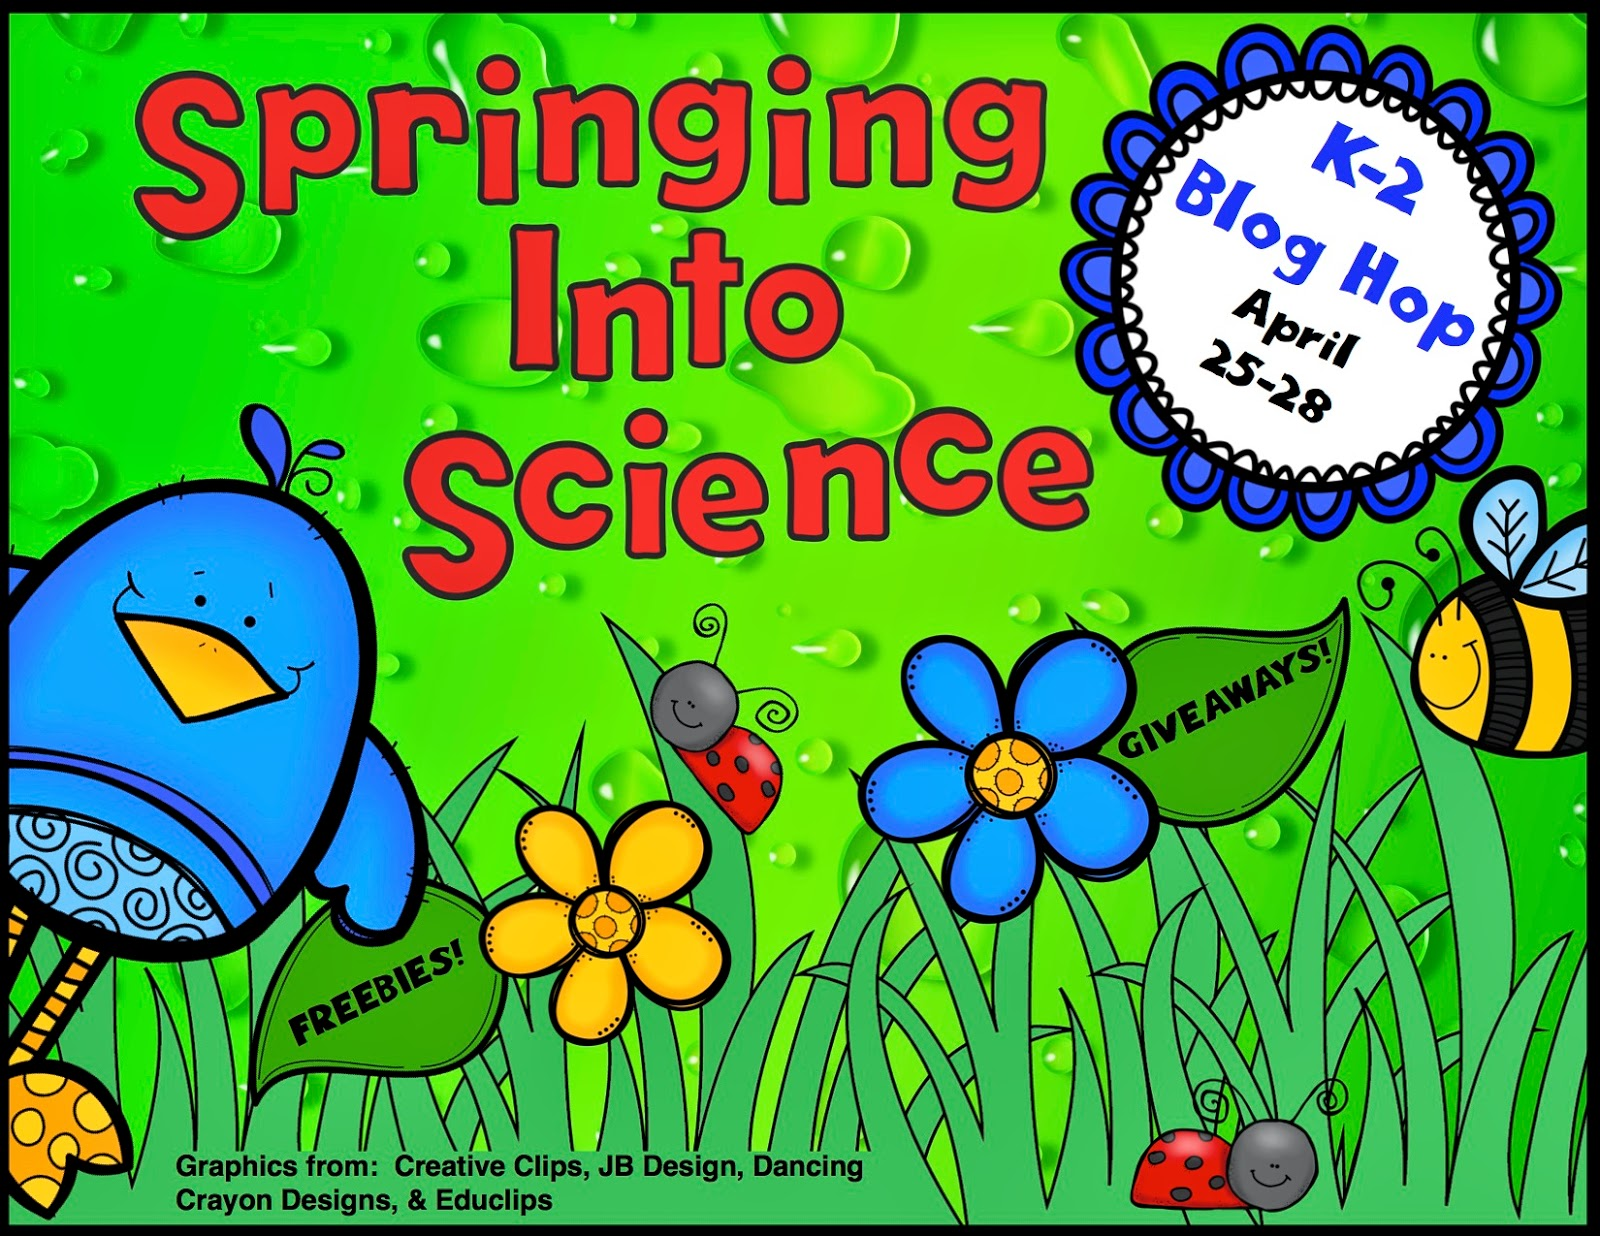 http://primaryinspiration.blogspot.com/2014/04/springing-into-science-blog-hop-with.html